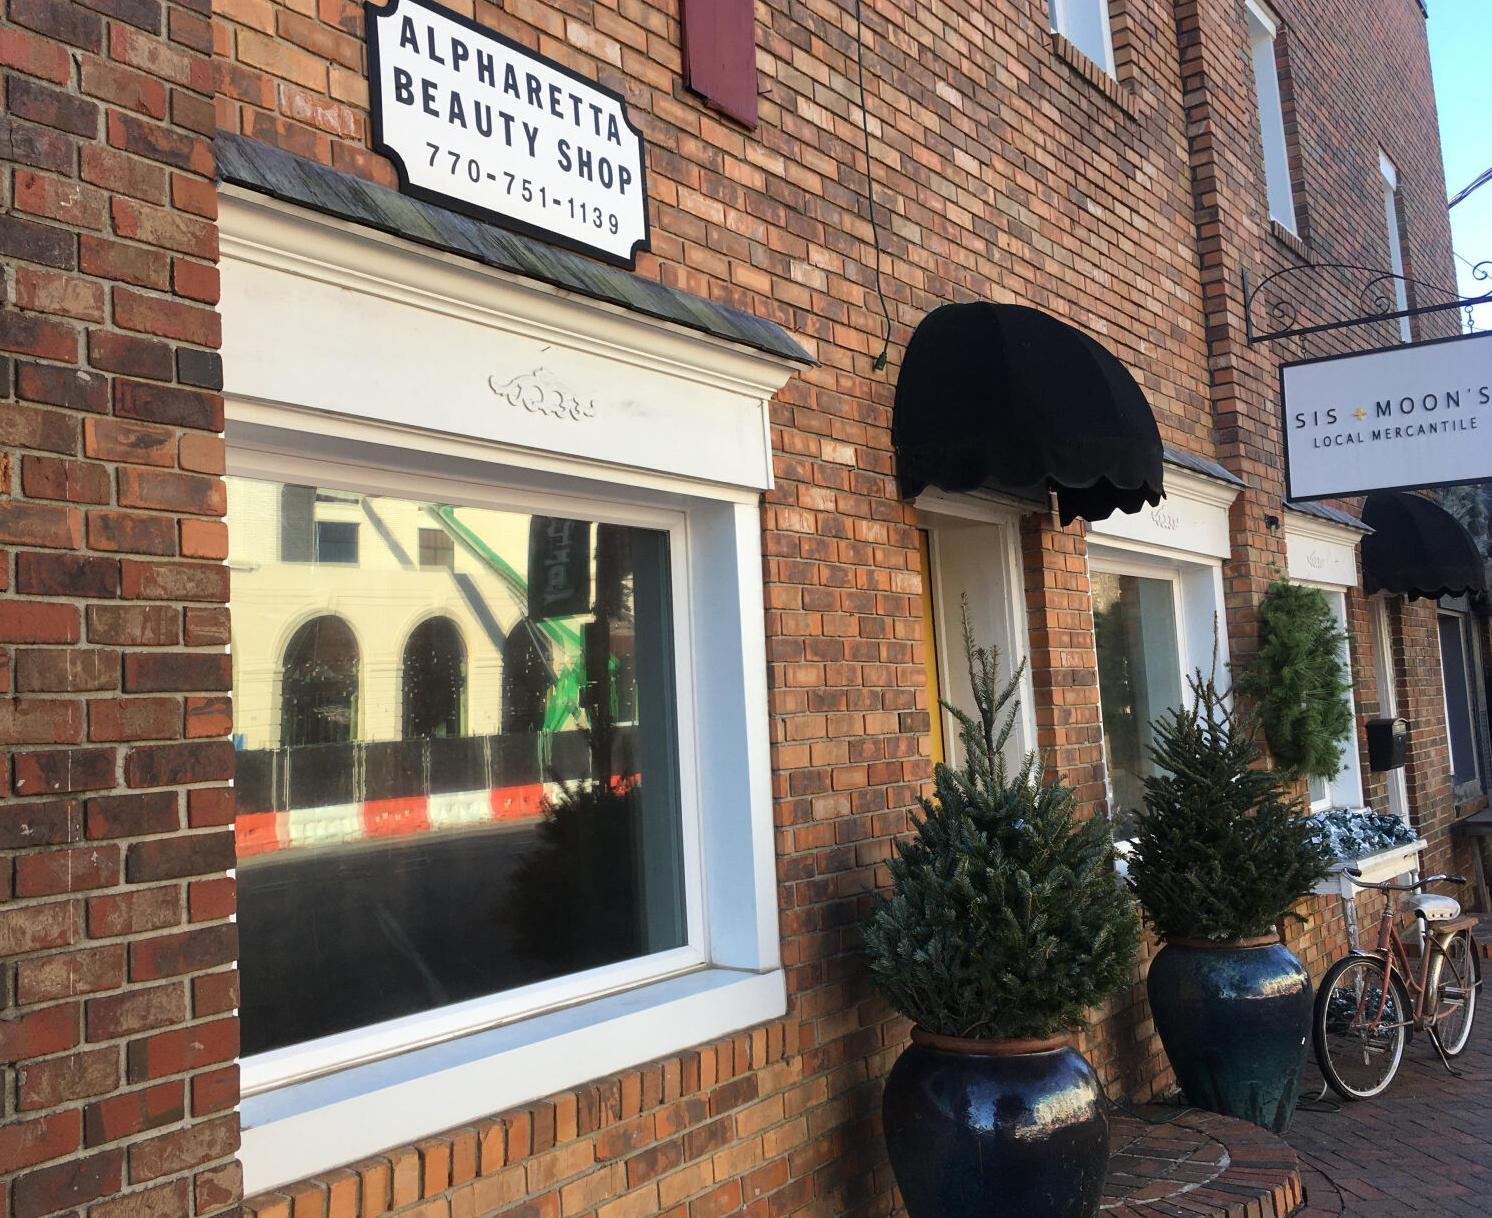 After 34 years in business, salon surrenders to downtown Alpharetta flurry